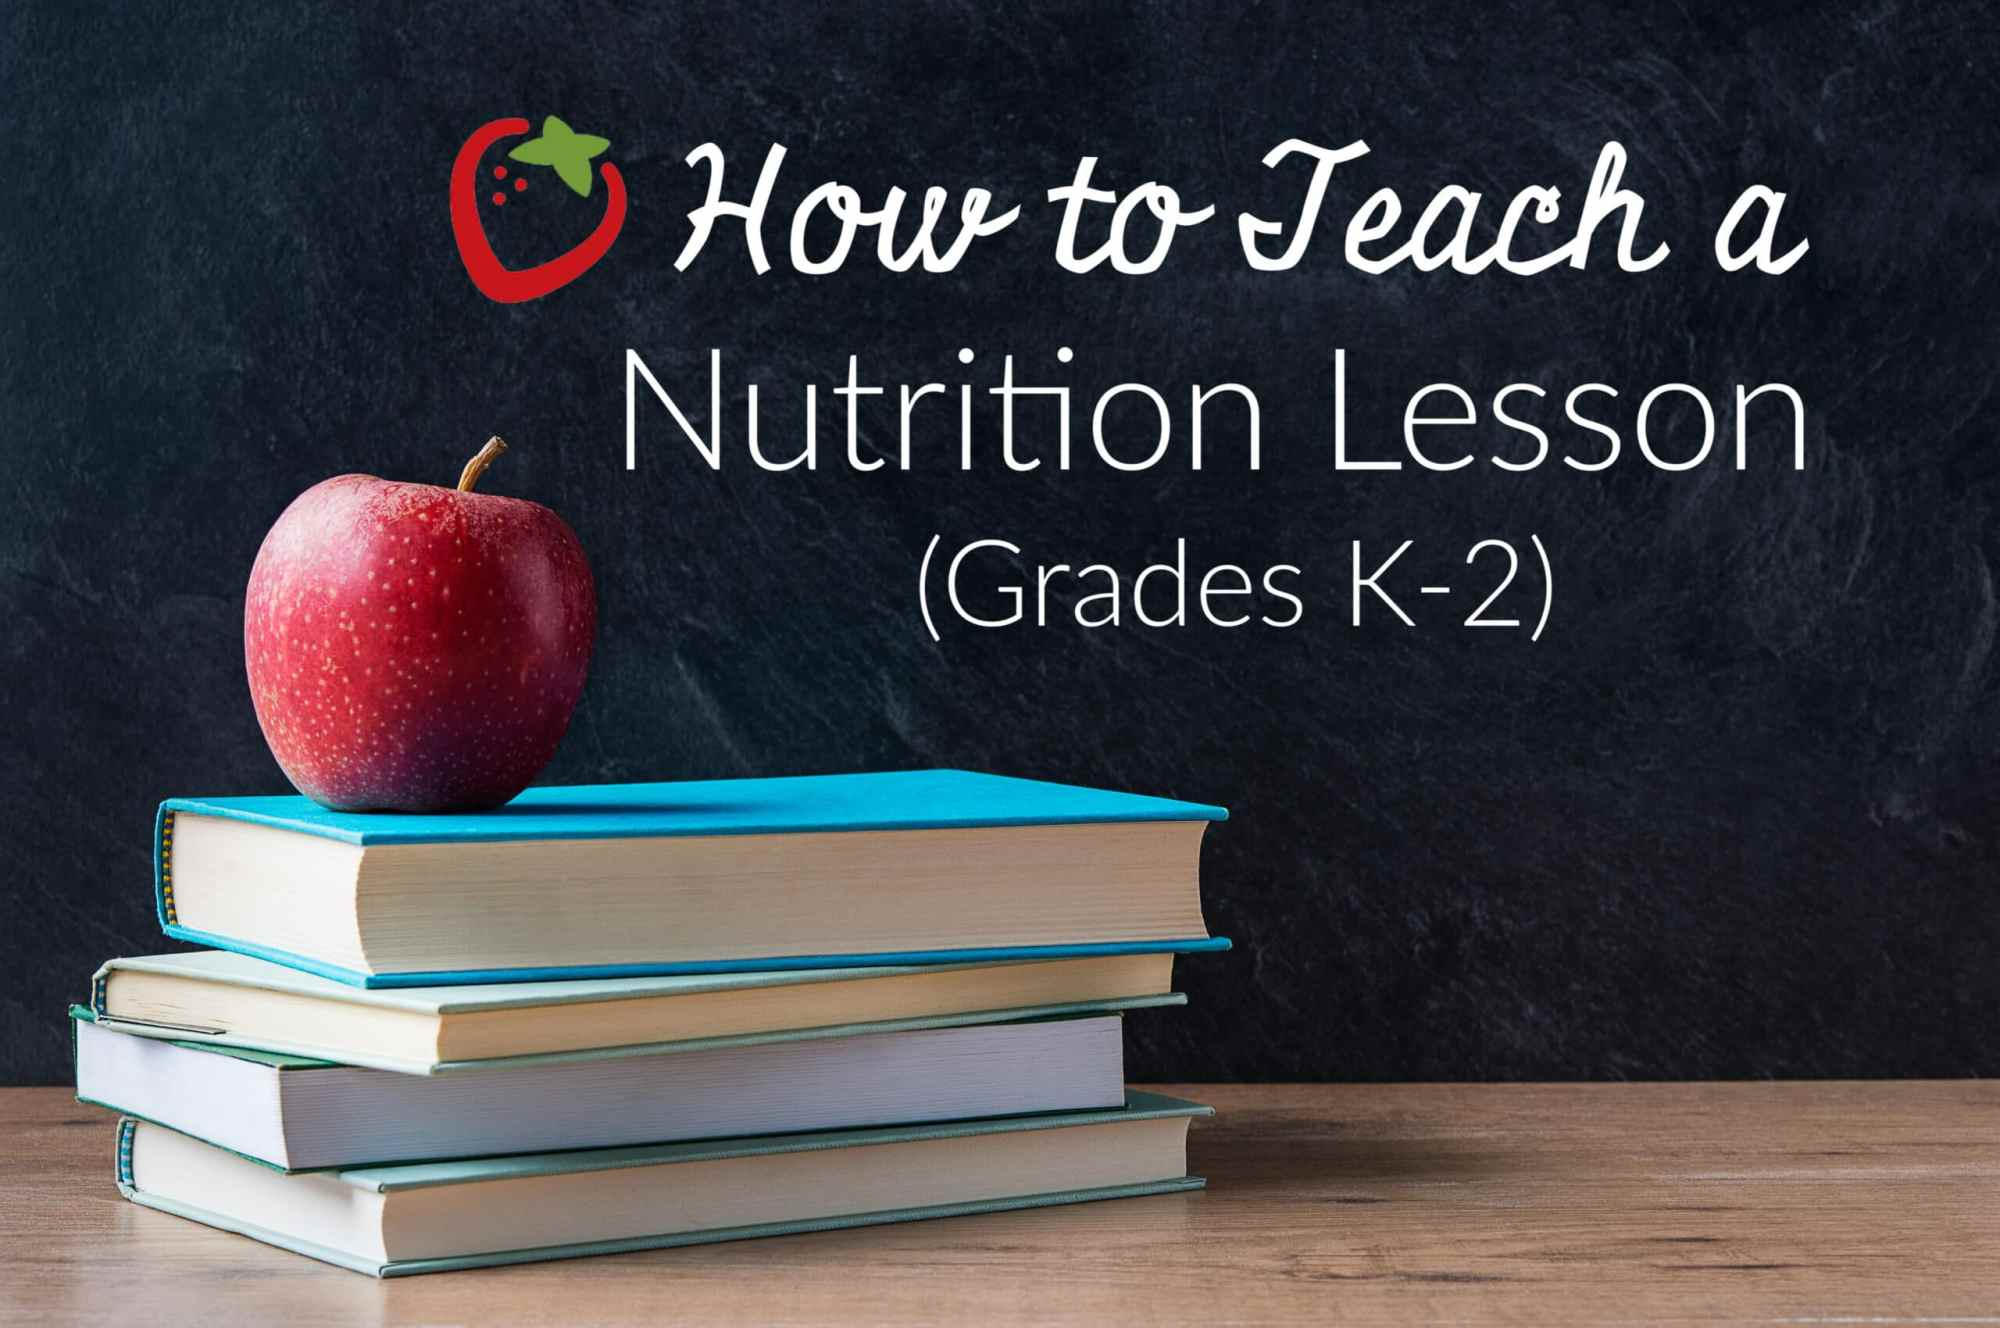 hight resolution of How to Teach a Nutrition Lesson (Grades K-2) - Super Healthy Kids